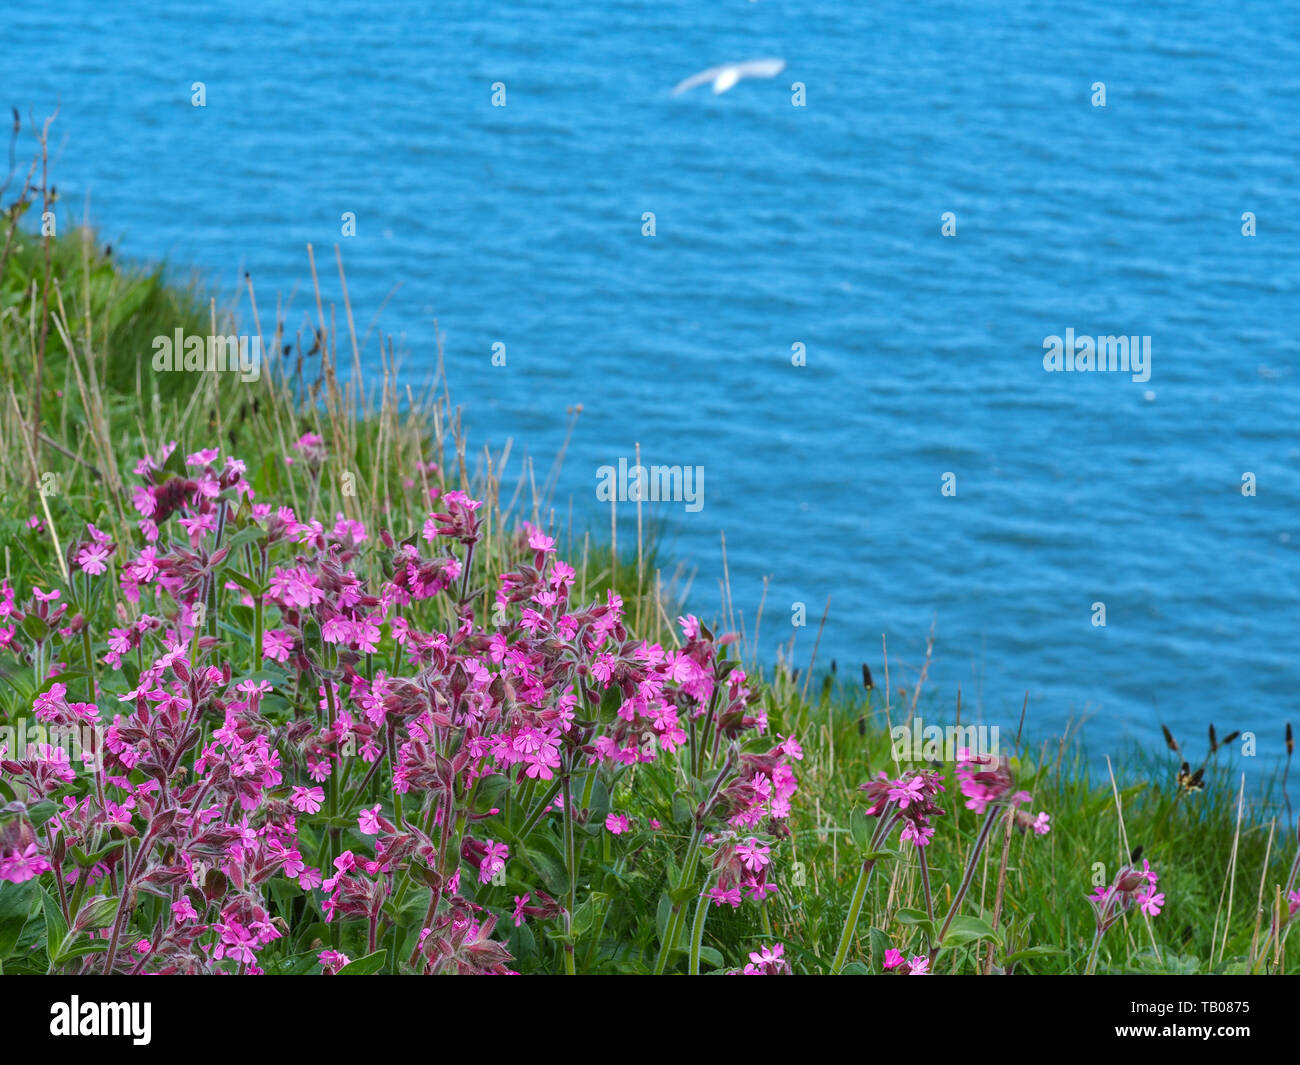 Red campion growing on the edge of a cliff at Bempton Cliffs, East Yorkshire, England, with blue sea and a gull in the background Stock Photo